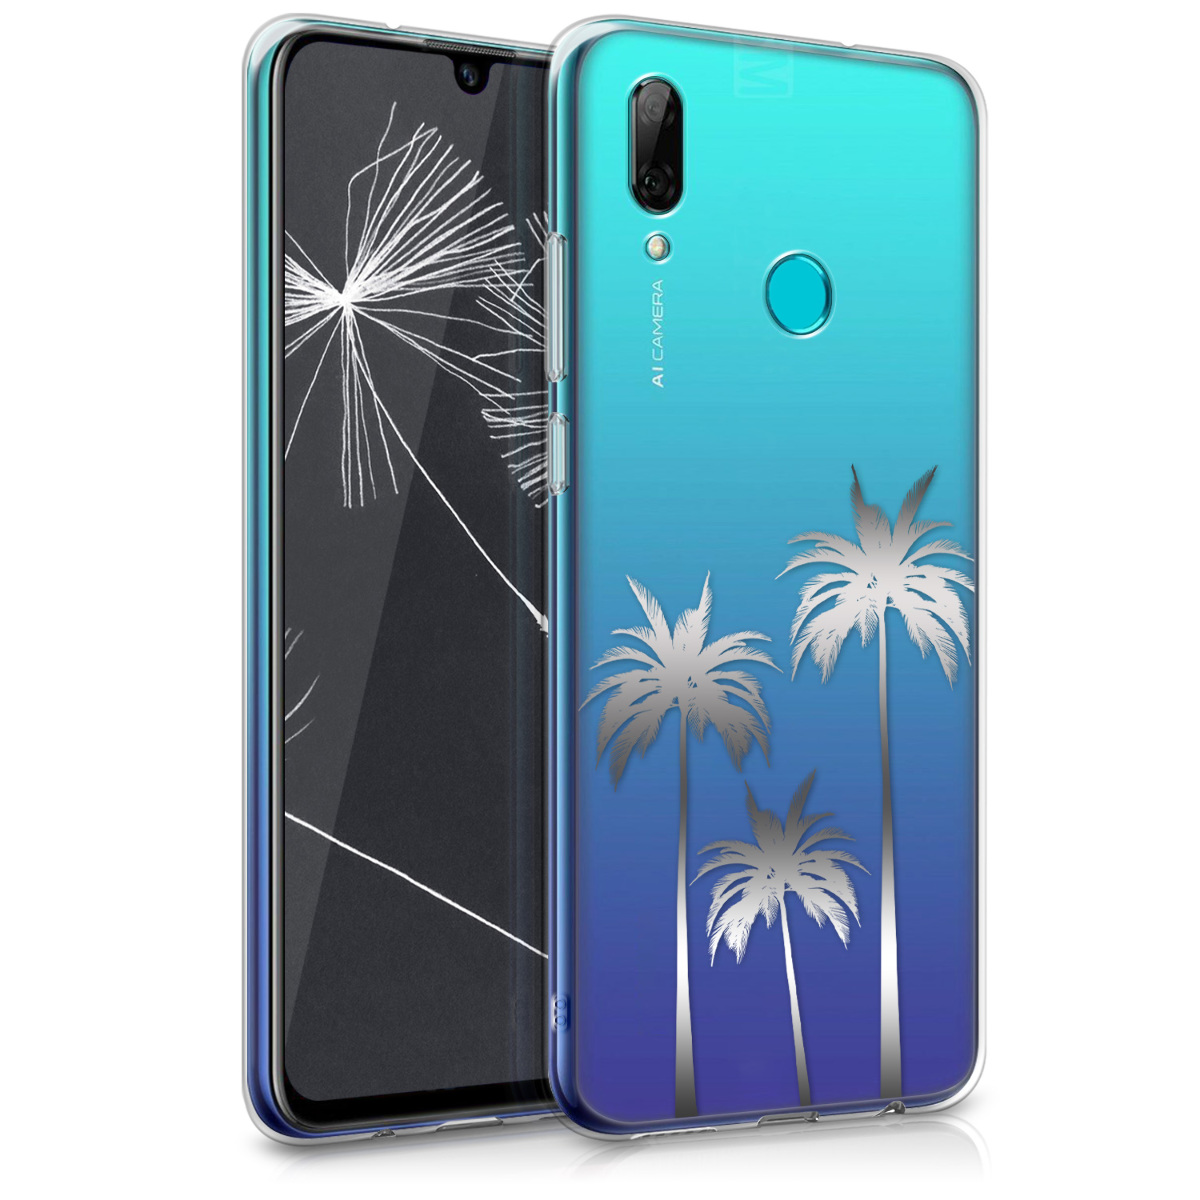 KW Θήκη Σιλικόνης Huawei P Smart 2019 - Silver / Transparent (47388.22)